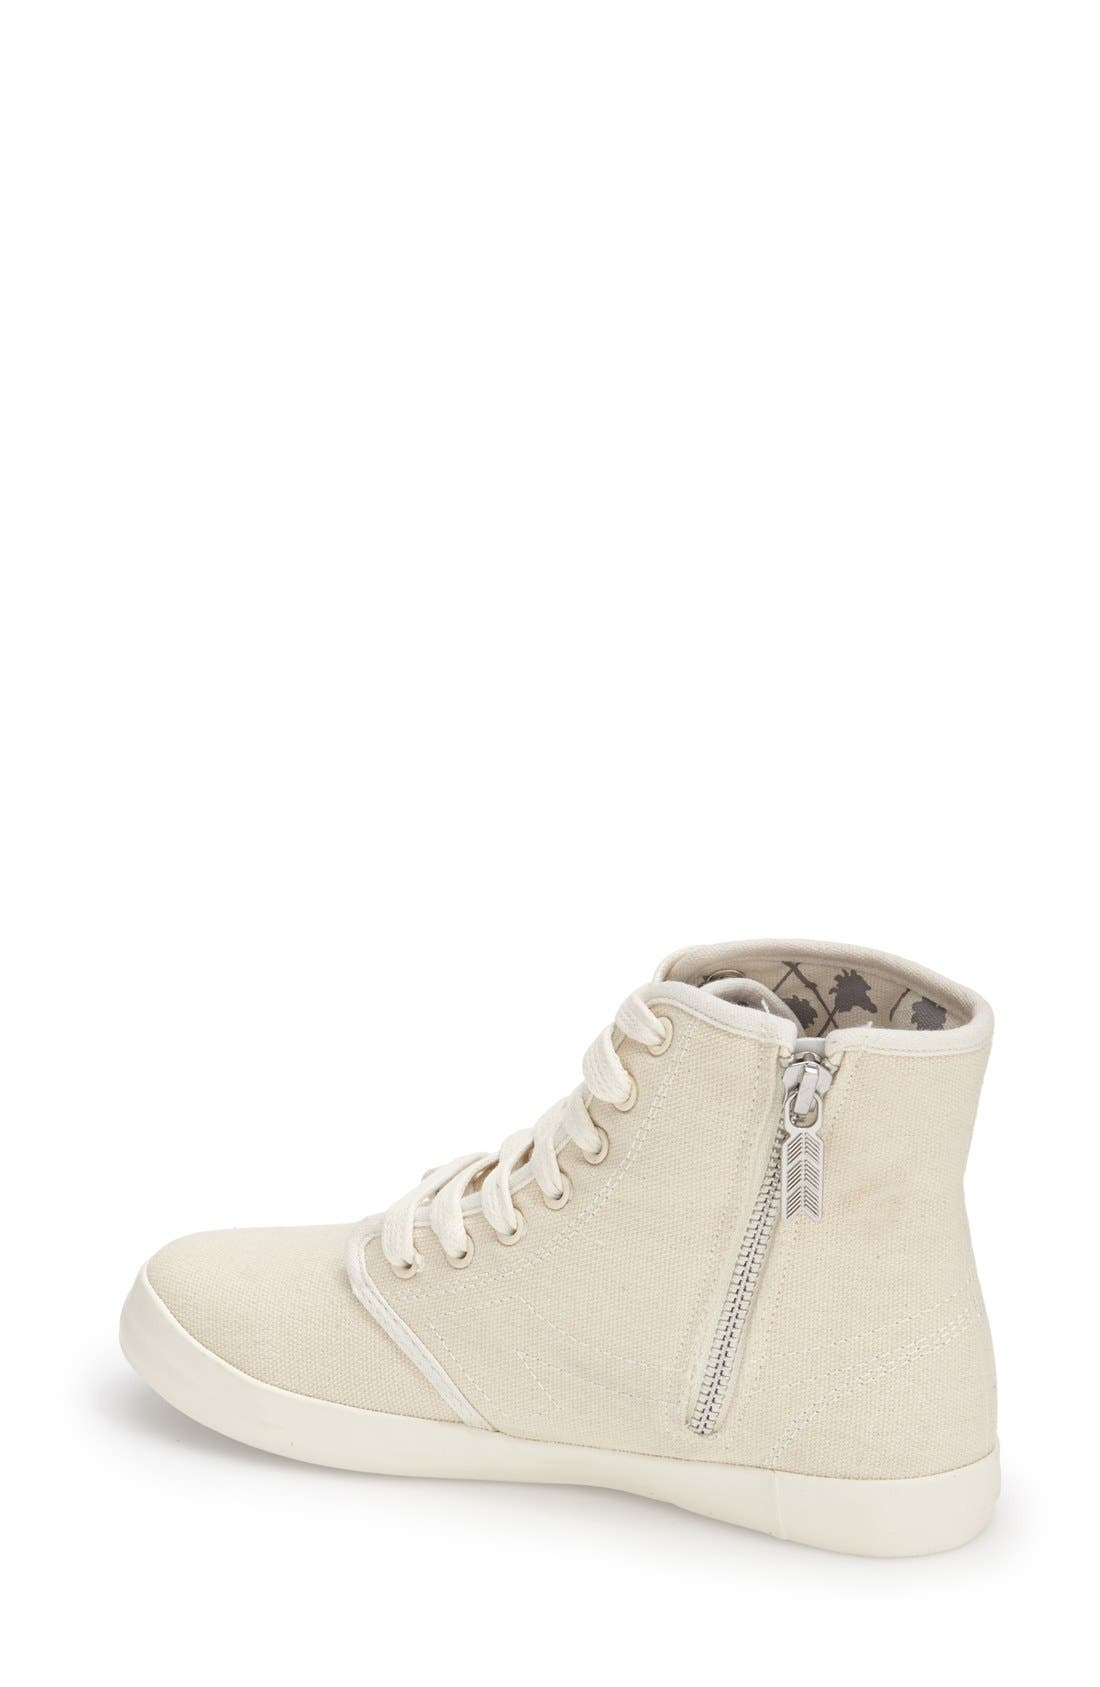 Alternate Image 2  - The People's Movement 'Marcos' High Top Sneaker (Women)